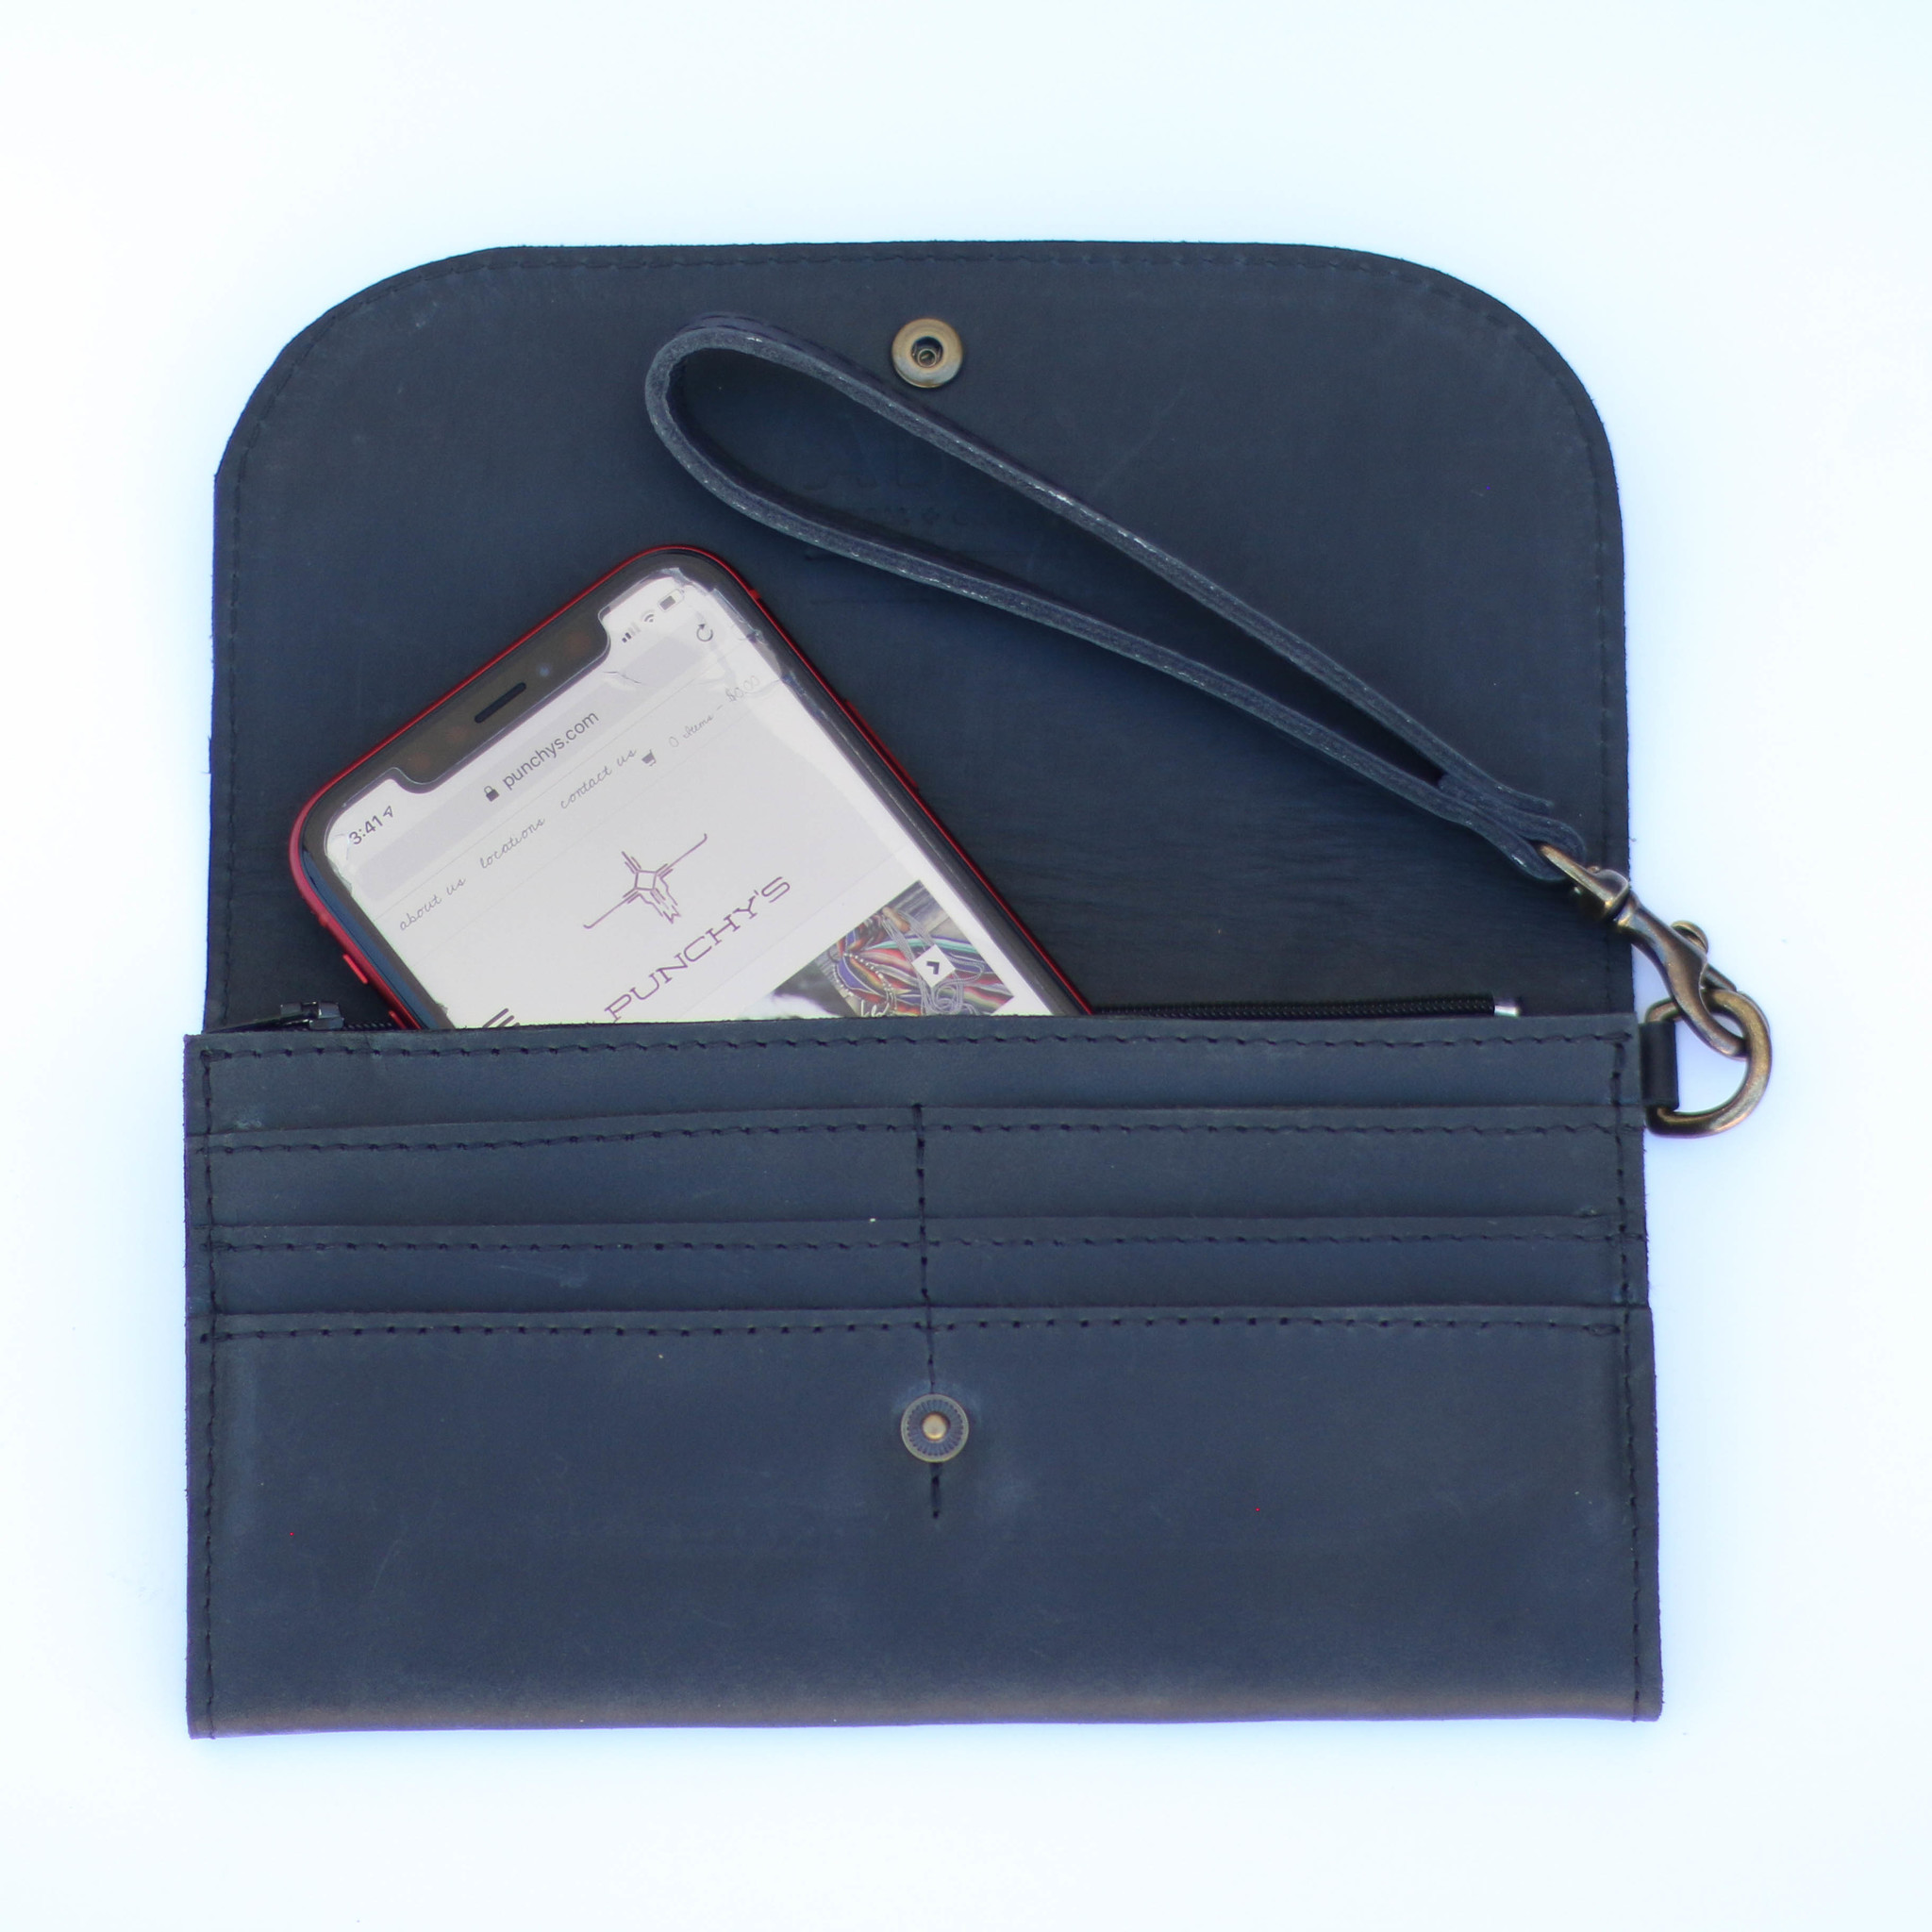 Punchy's Mare Phone Wallet in Black